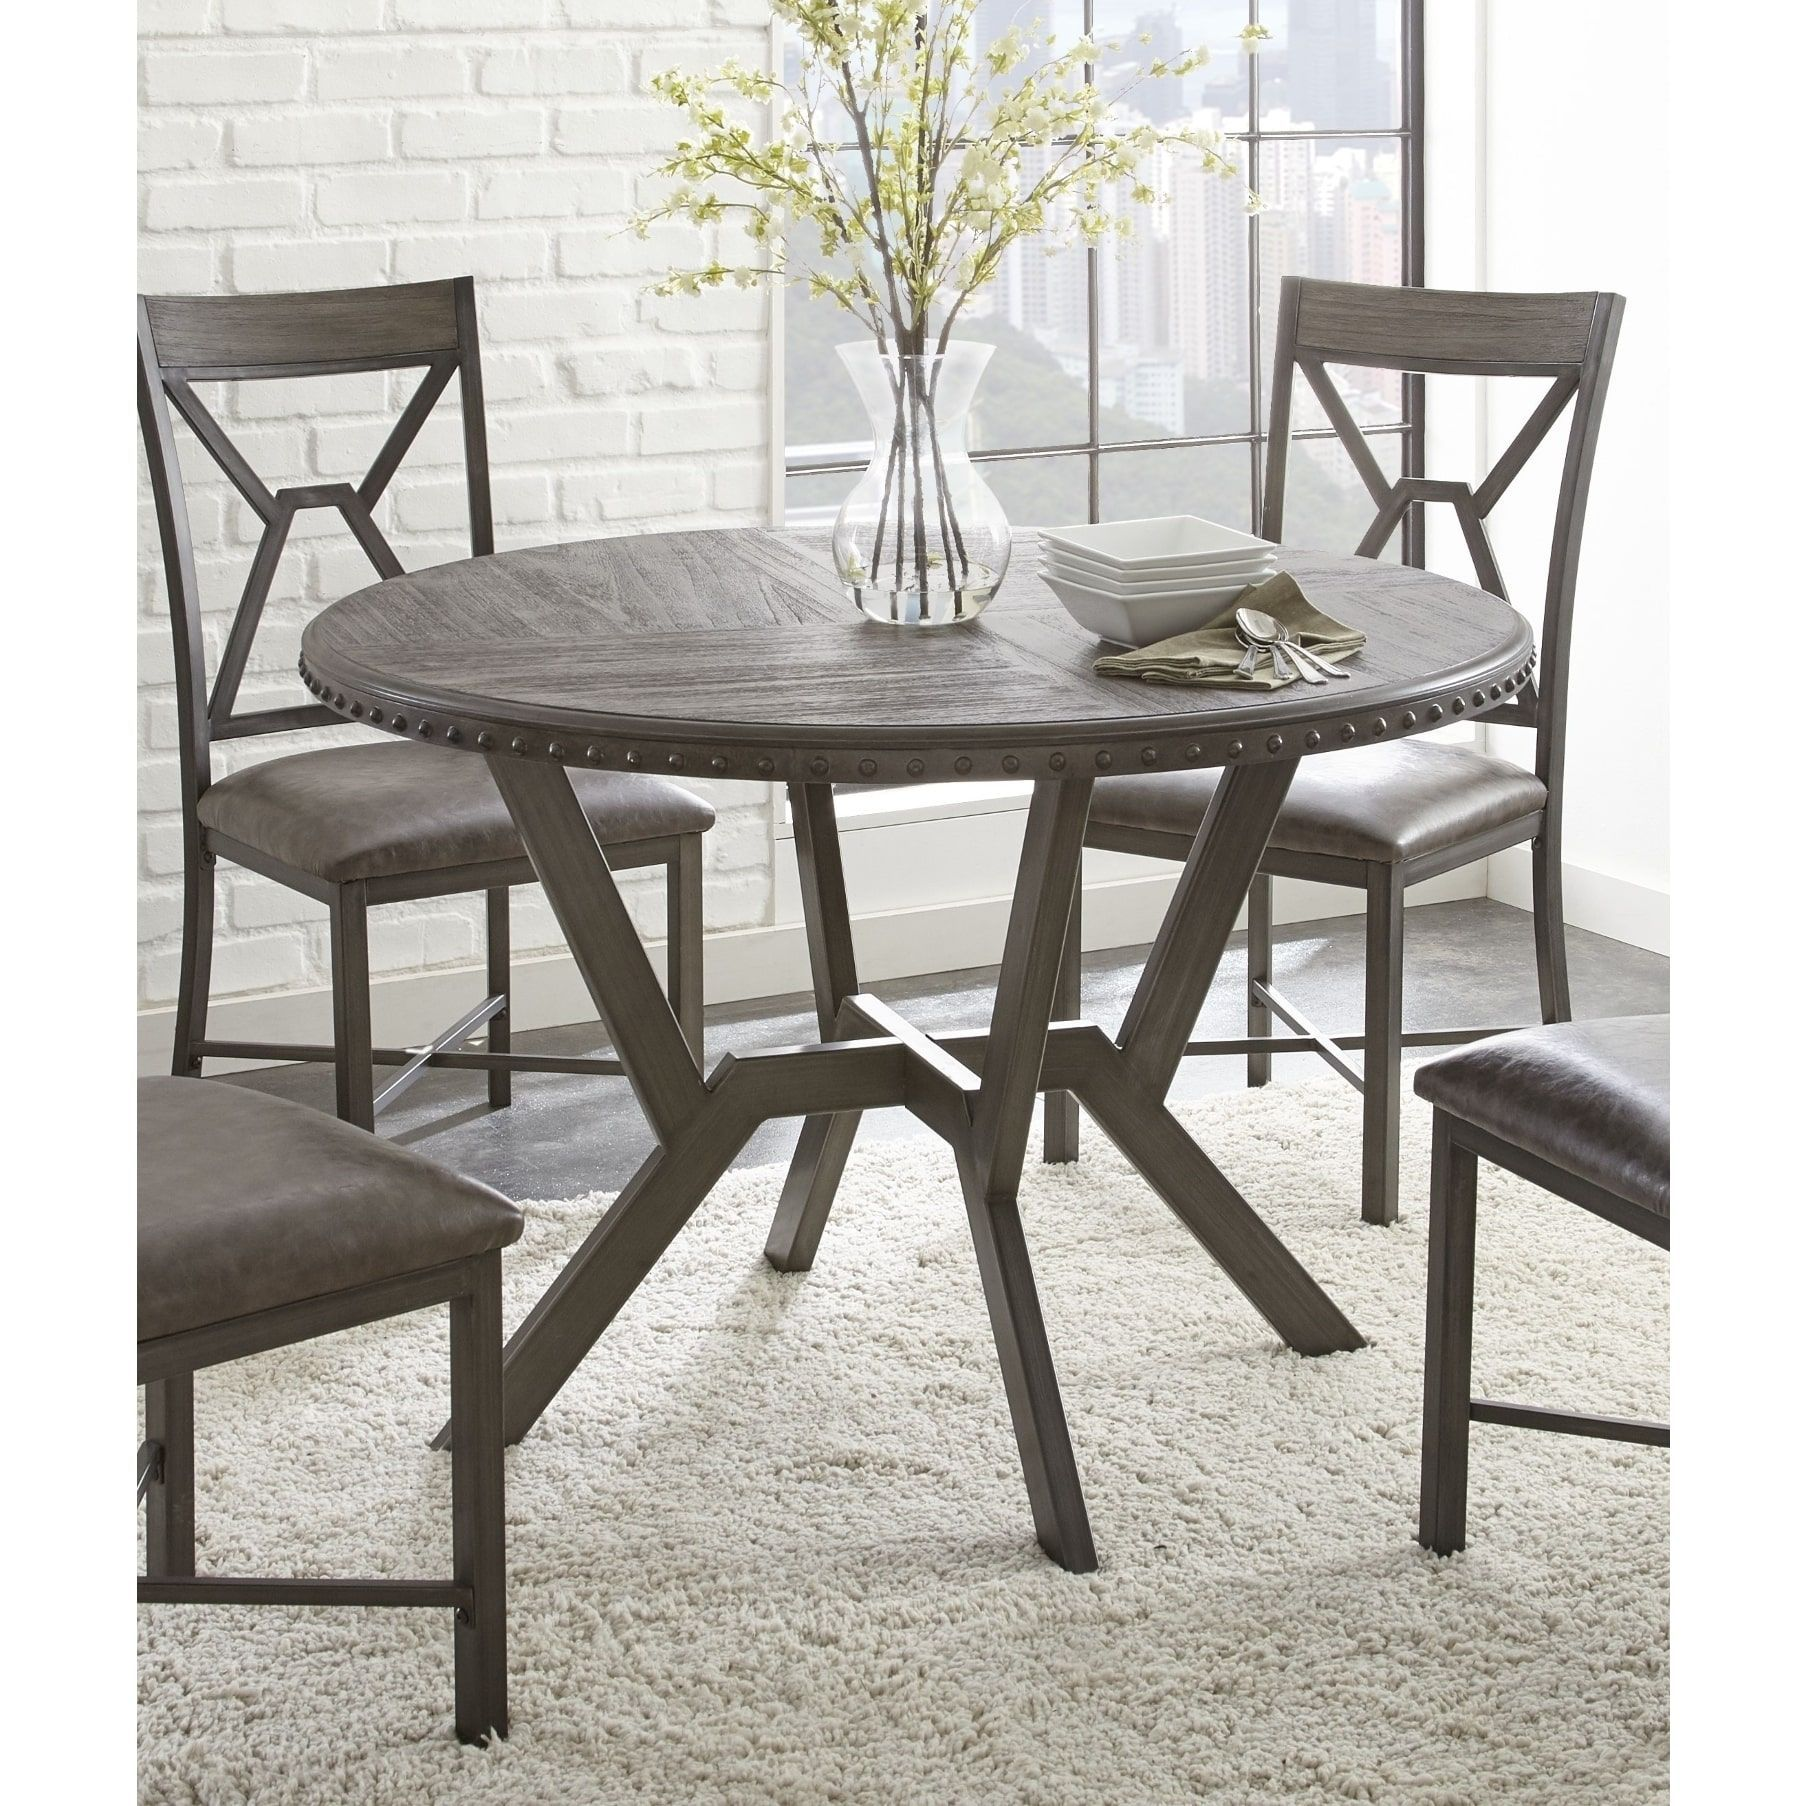 Asbury 45 Inch Round Dining Table By Greyson Living